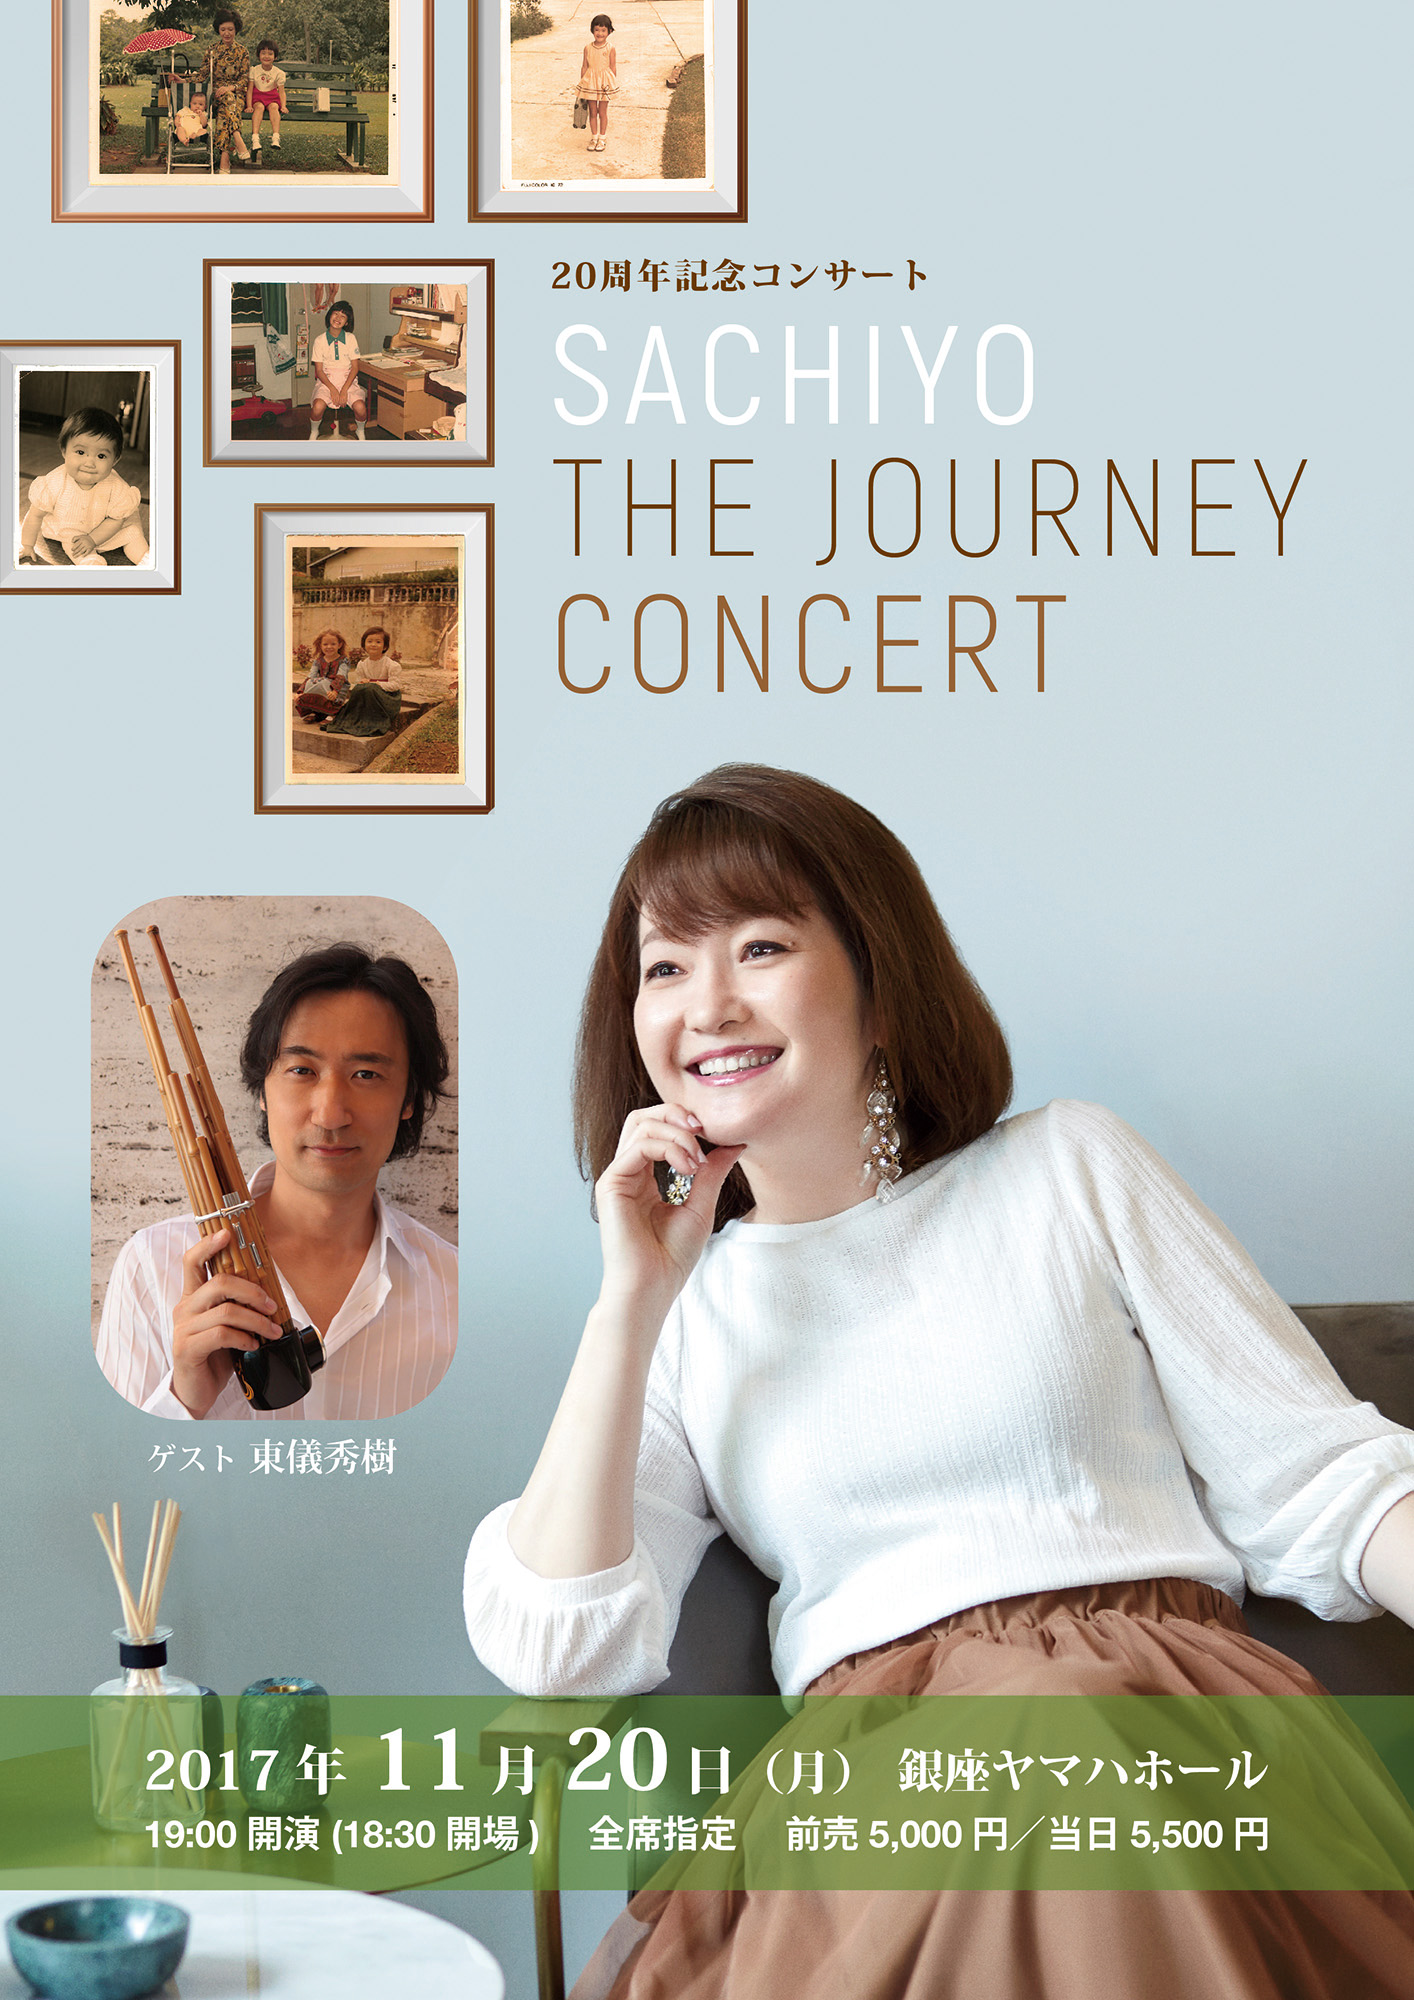 Sachiyo - The Journey Concert